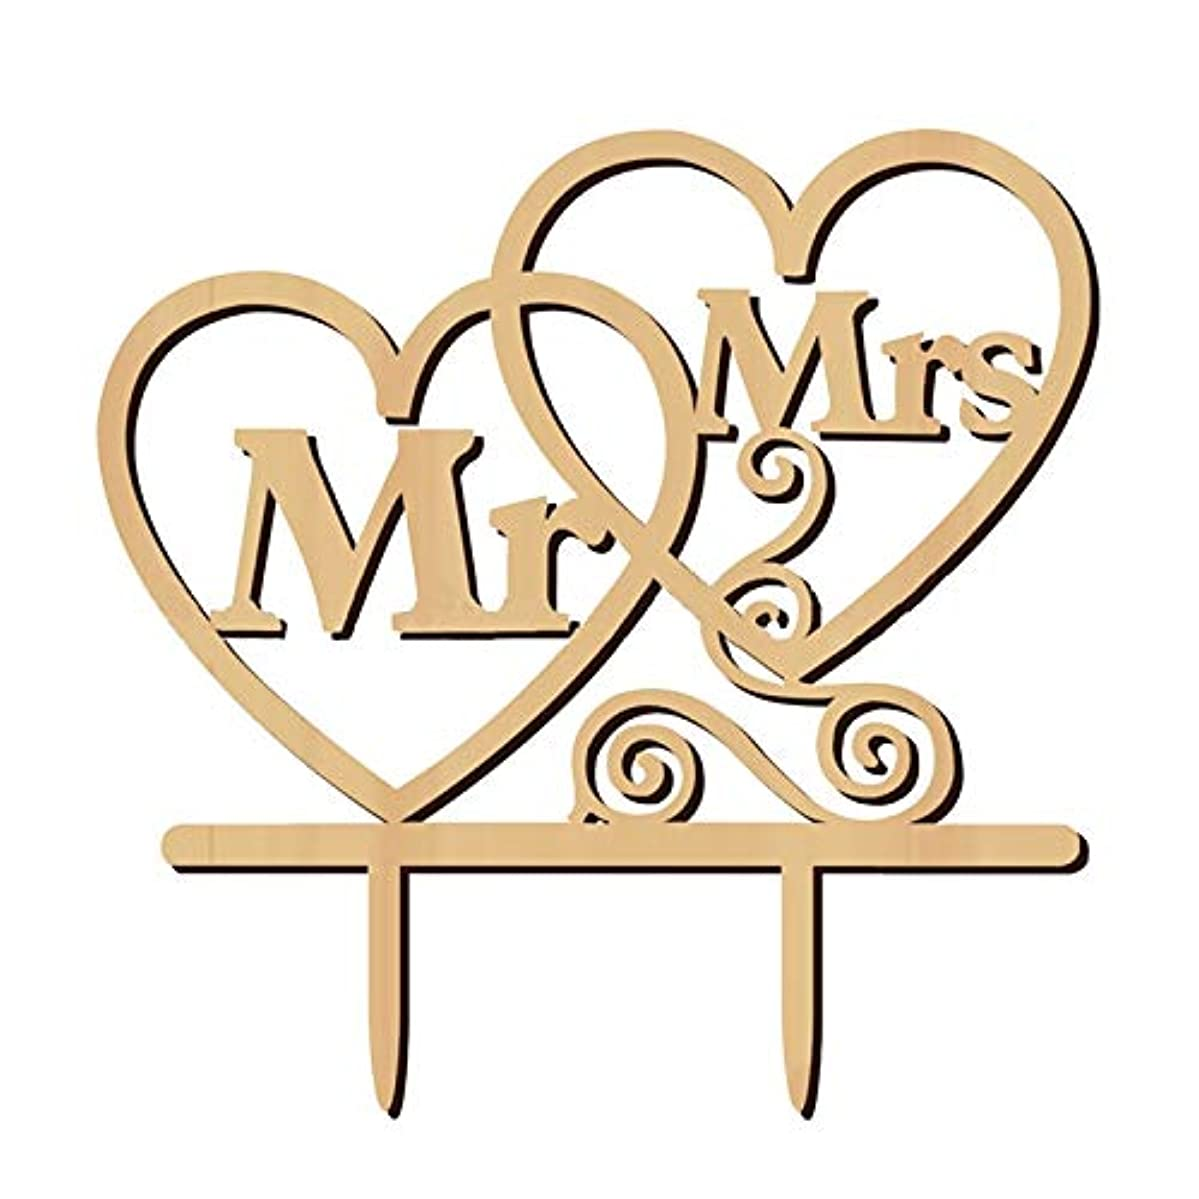 Mrs And Mr - Rustic Wedding Cake Per Mr And Mrs Style 38 - Keychain Johnson Neon Aprons Novel Devotions Balloons Oblong Pillows Flag Graphic Covers Incredible Engagement Ornament Bedroom